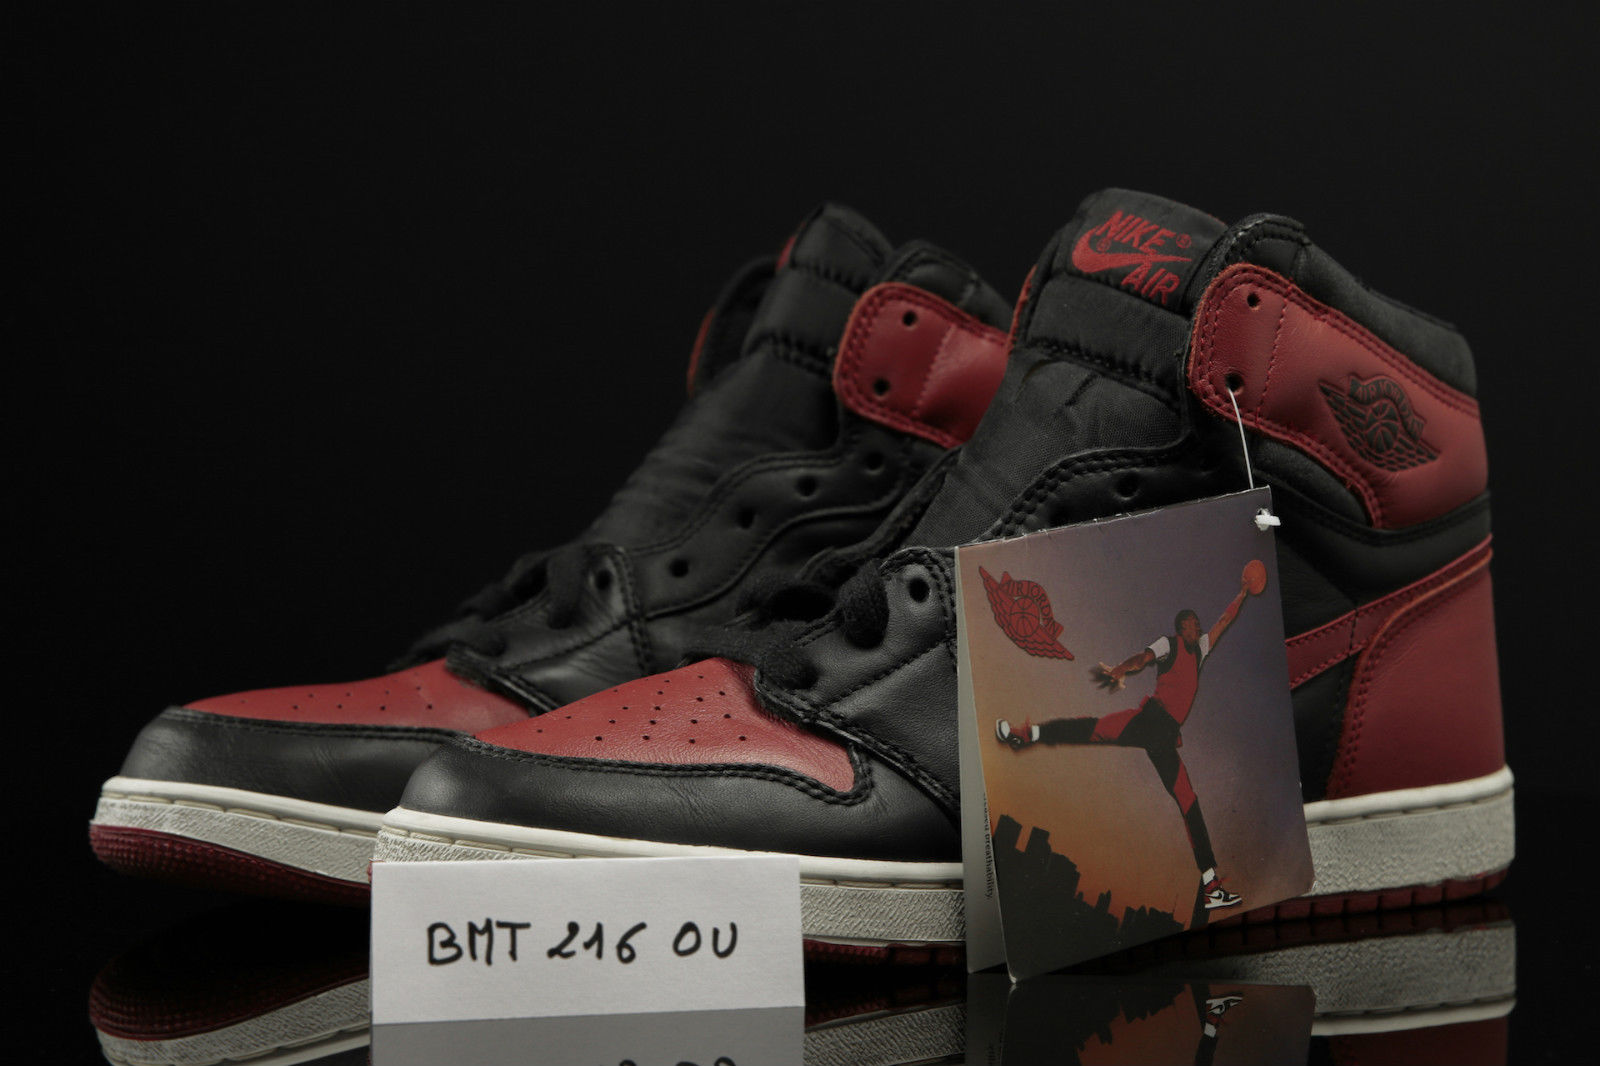 82dce71dcae The 23 Most Rare and Expensive Air Jordans on eBay Right Now | Sole ...